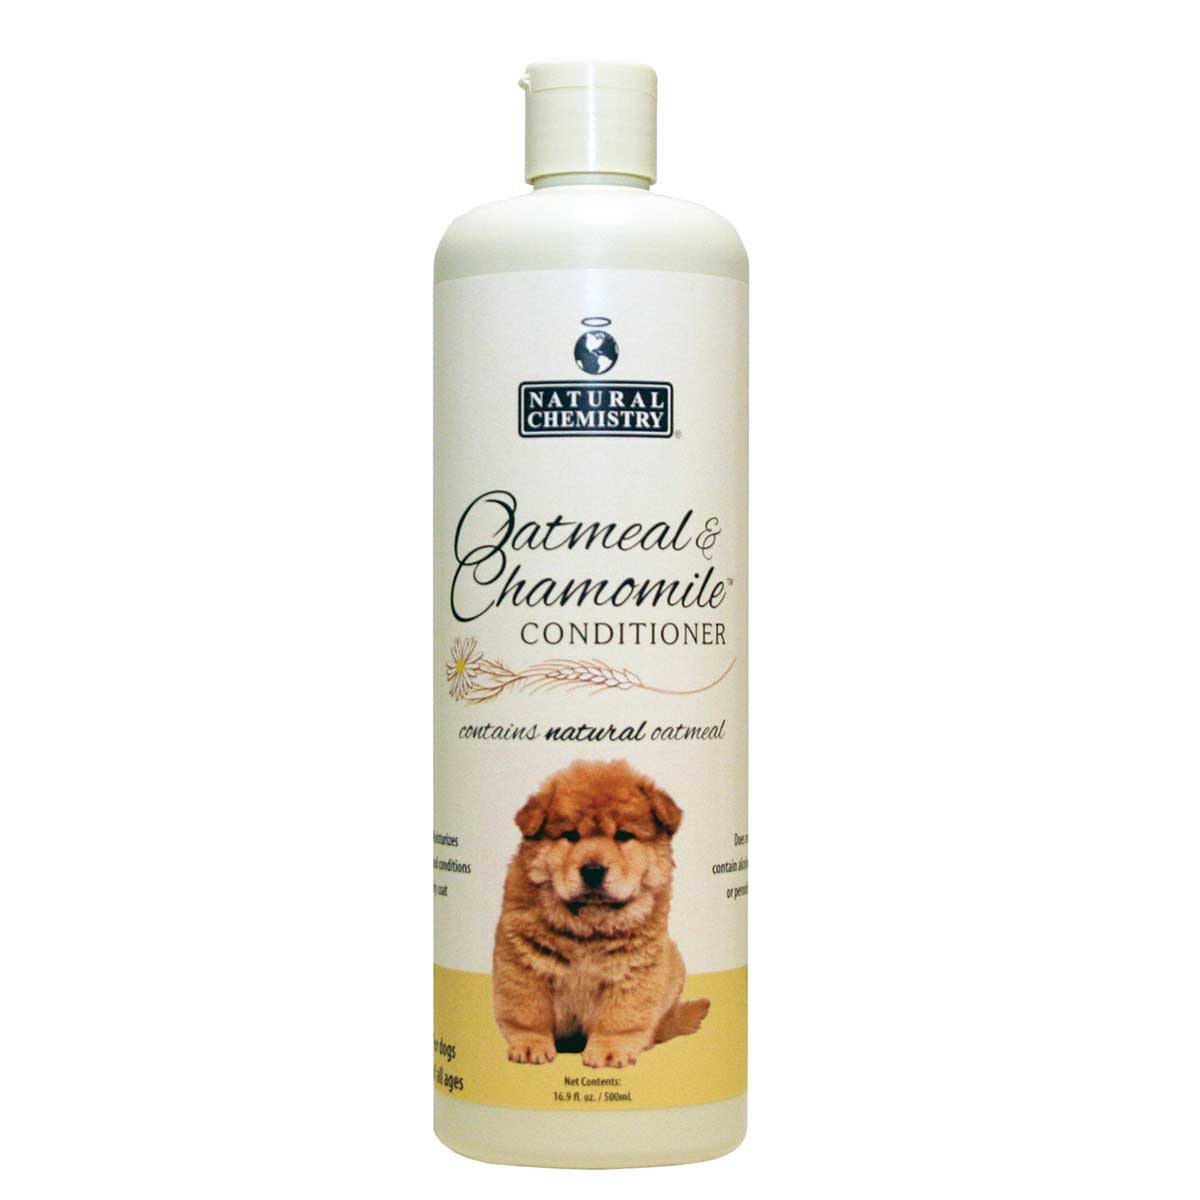 Natural Chemistry Oatmeal and Chamomile Dog Conditioner 16.9 oz